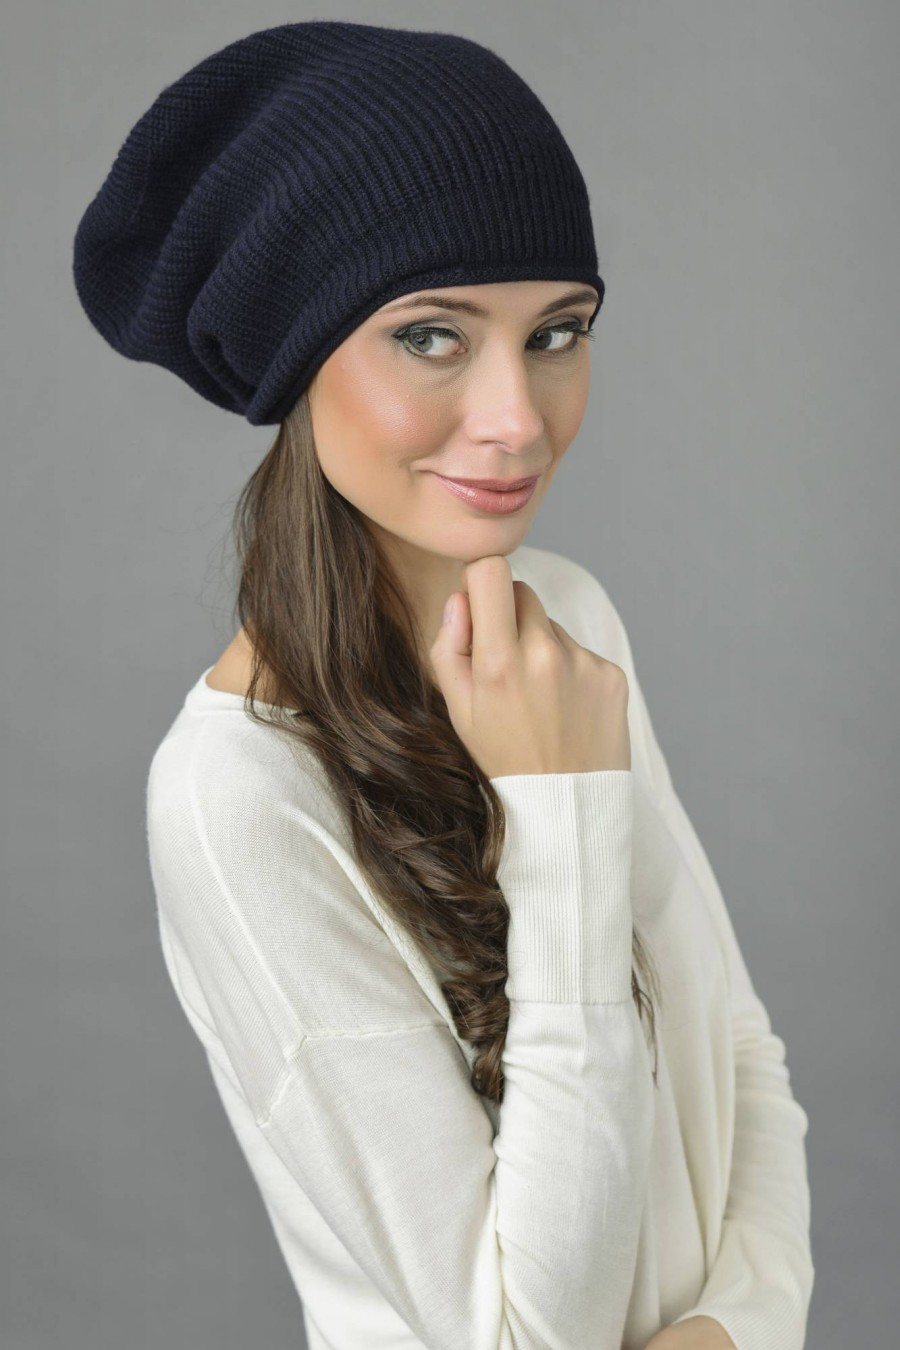 993a8a49b Pure Cashmere Ribbed Knitted Slouchy Beanie Hat in Navy Blue